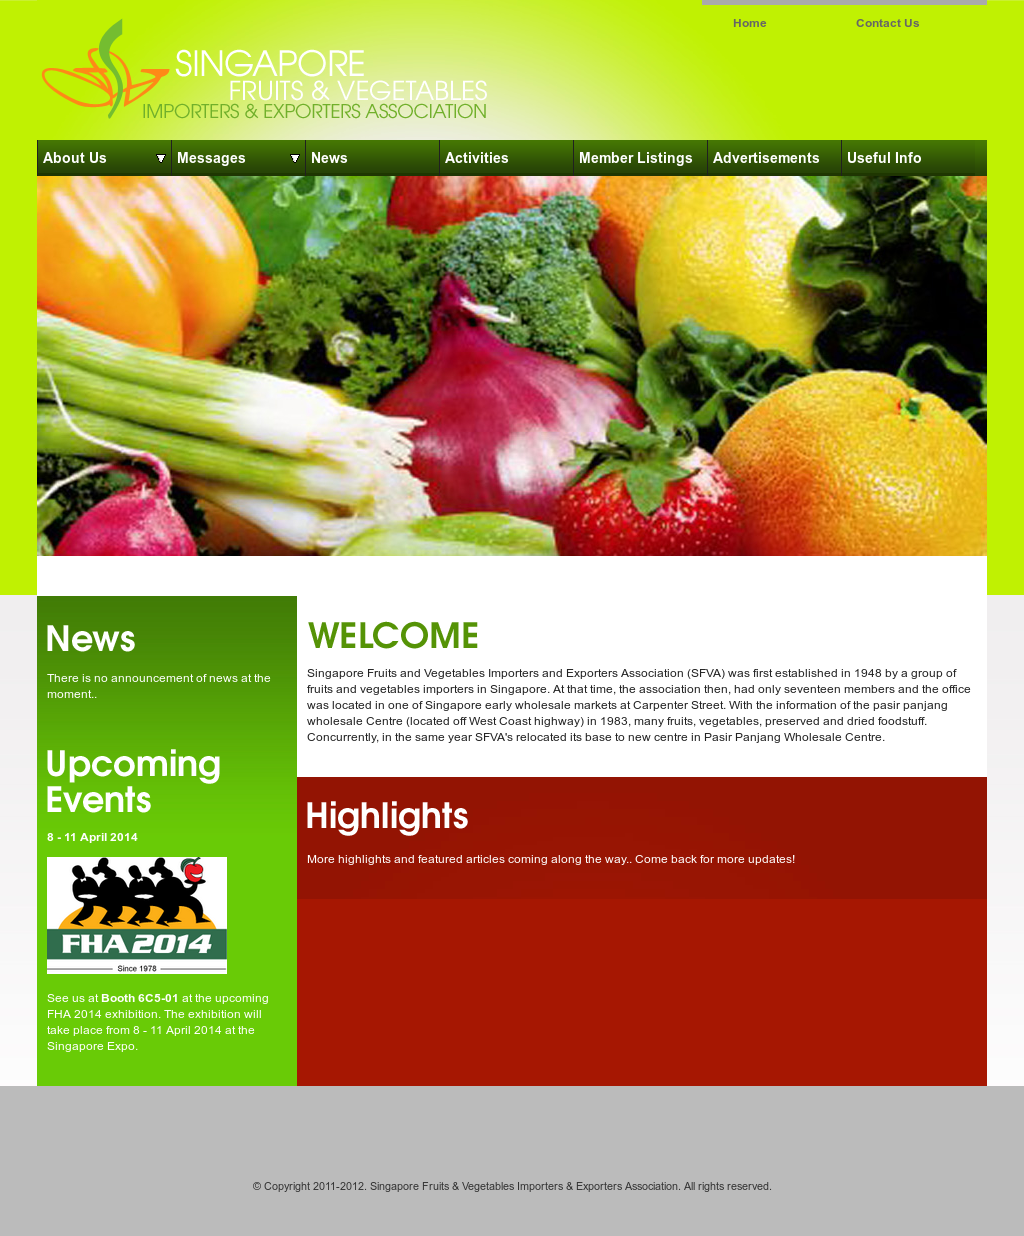 Singapore Fruits & Vegetables Importers & Exporters